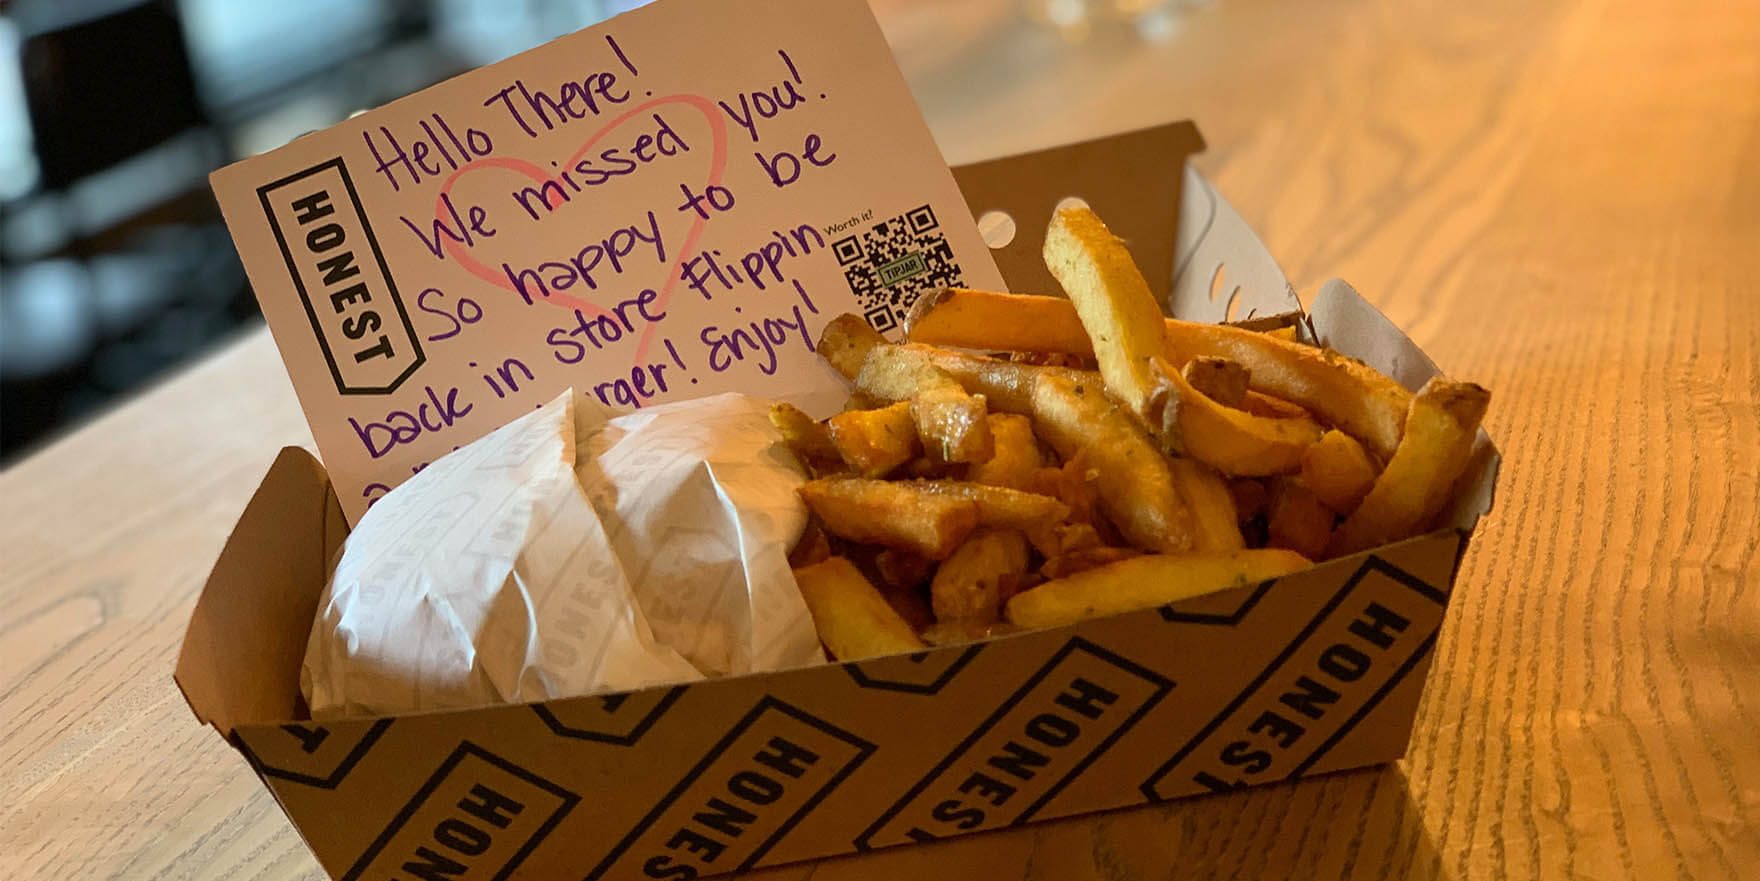 Honest Burgers takeout box, with burger, chips and a thankyou note